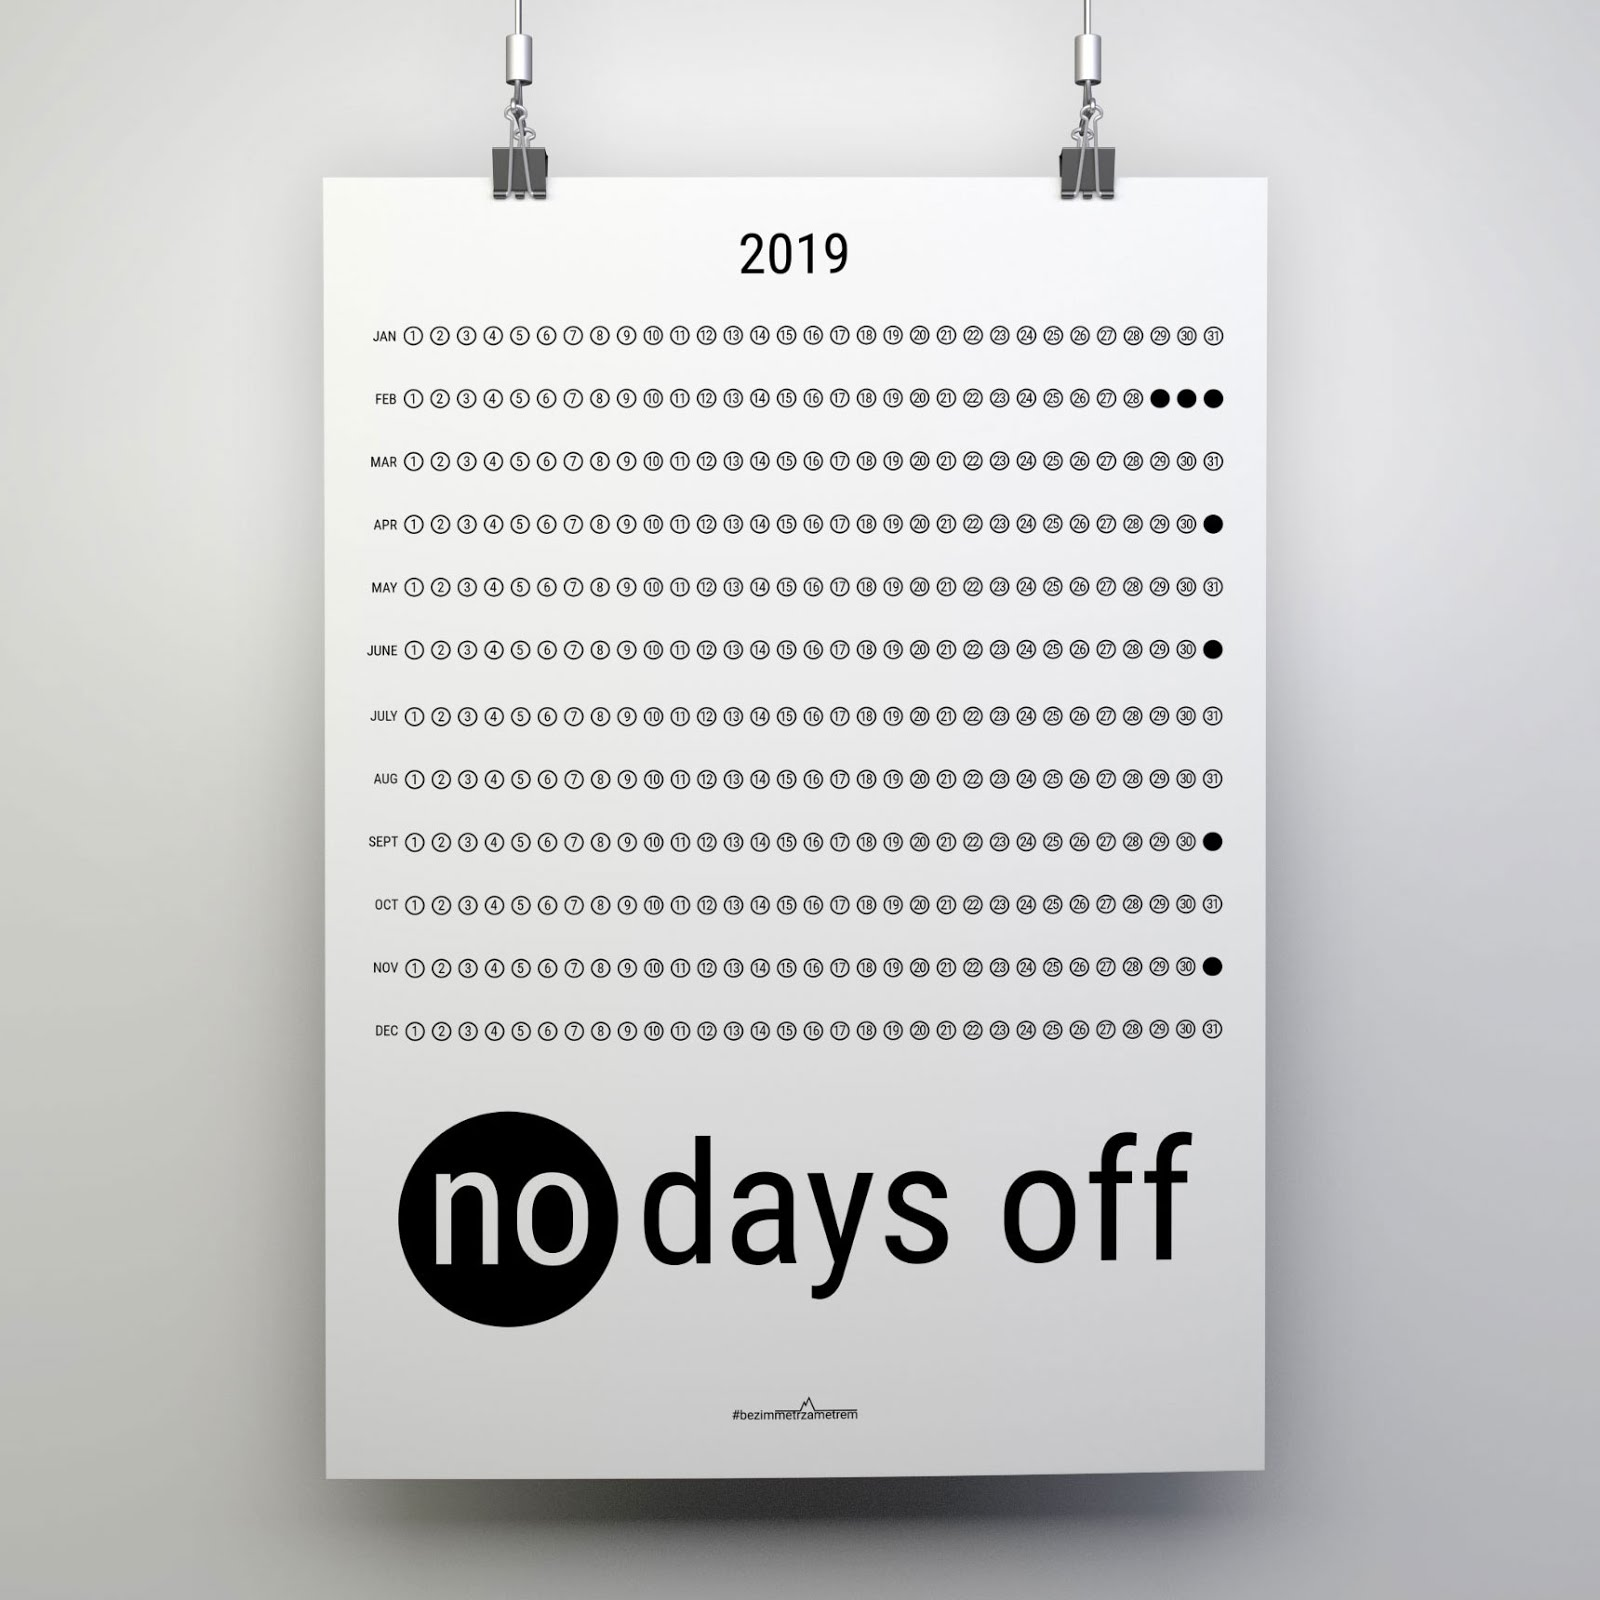 no days off calendar 2019